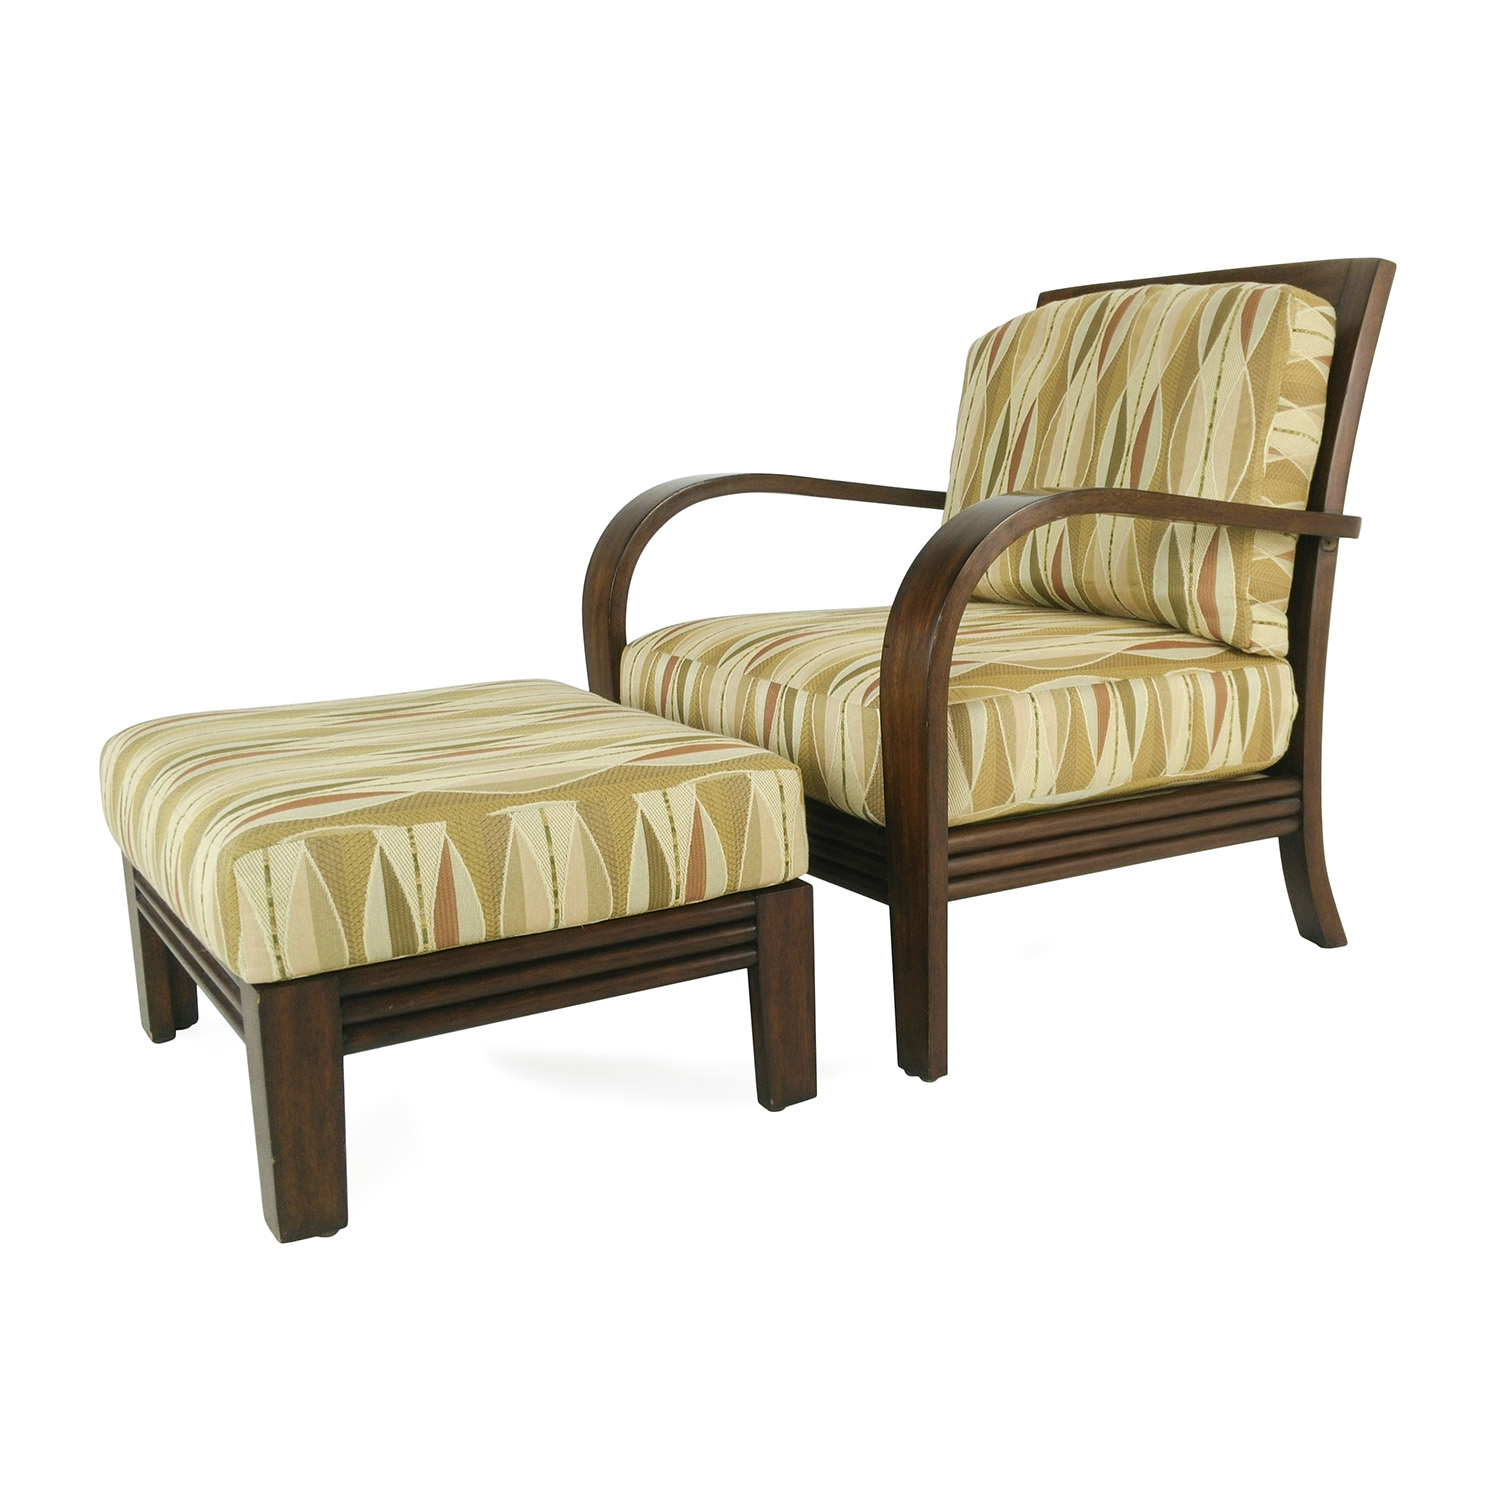 chairs with storage ottoman living room arm chair 81 off ethan allen lounge and